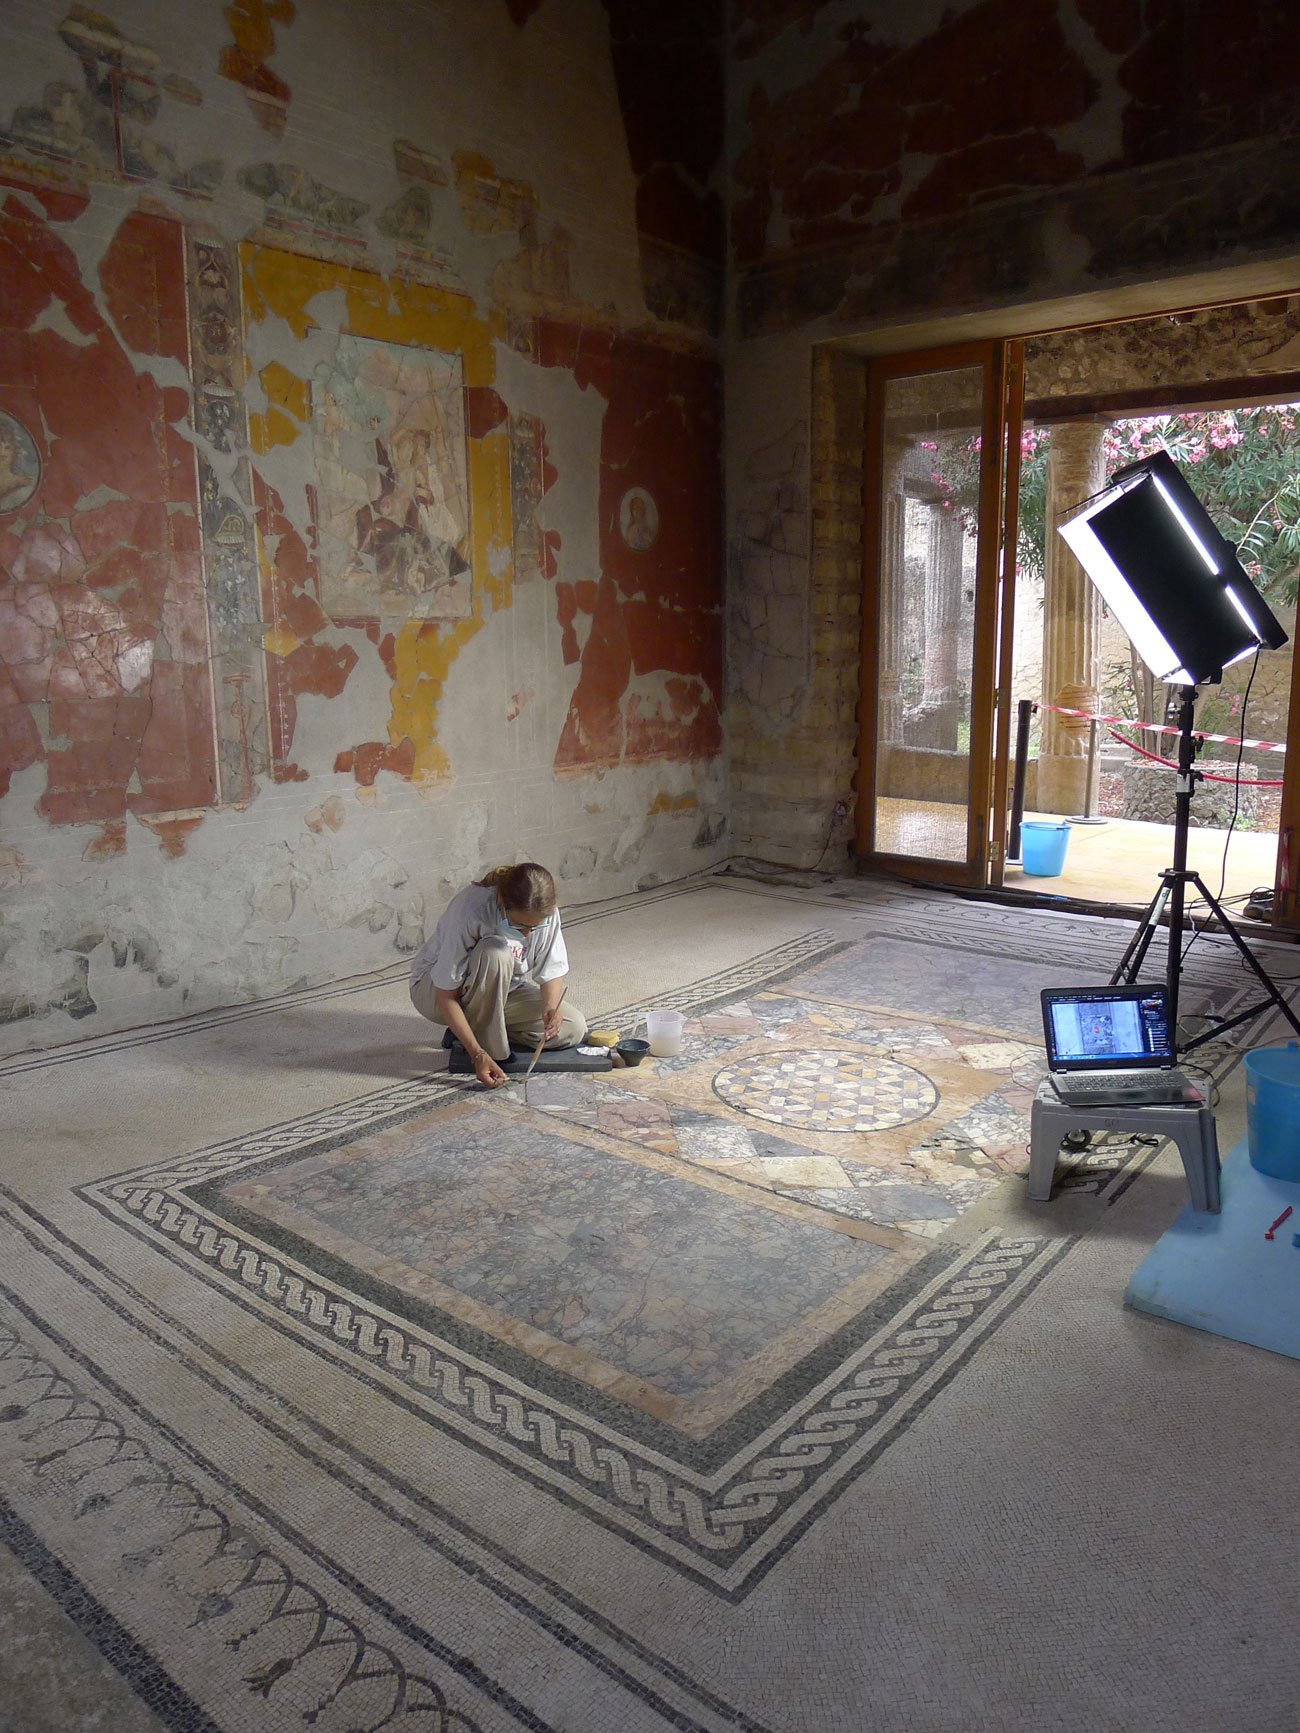 A woman kneels on the mosaic floor of a room in an ancient house with peeling paint on the walls, and a laptop computer and large light on the floor face her